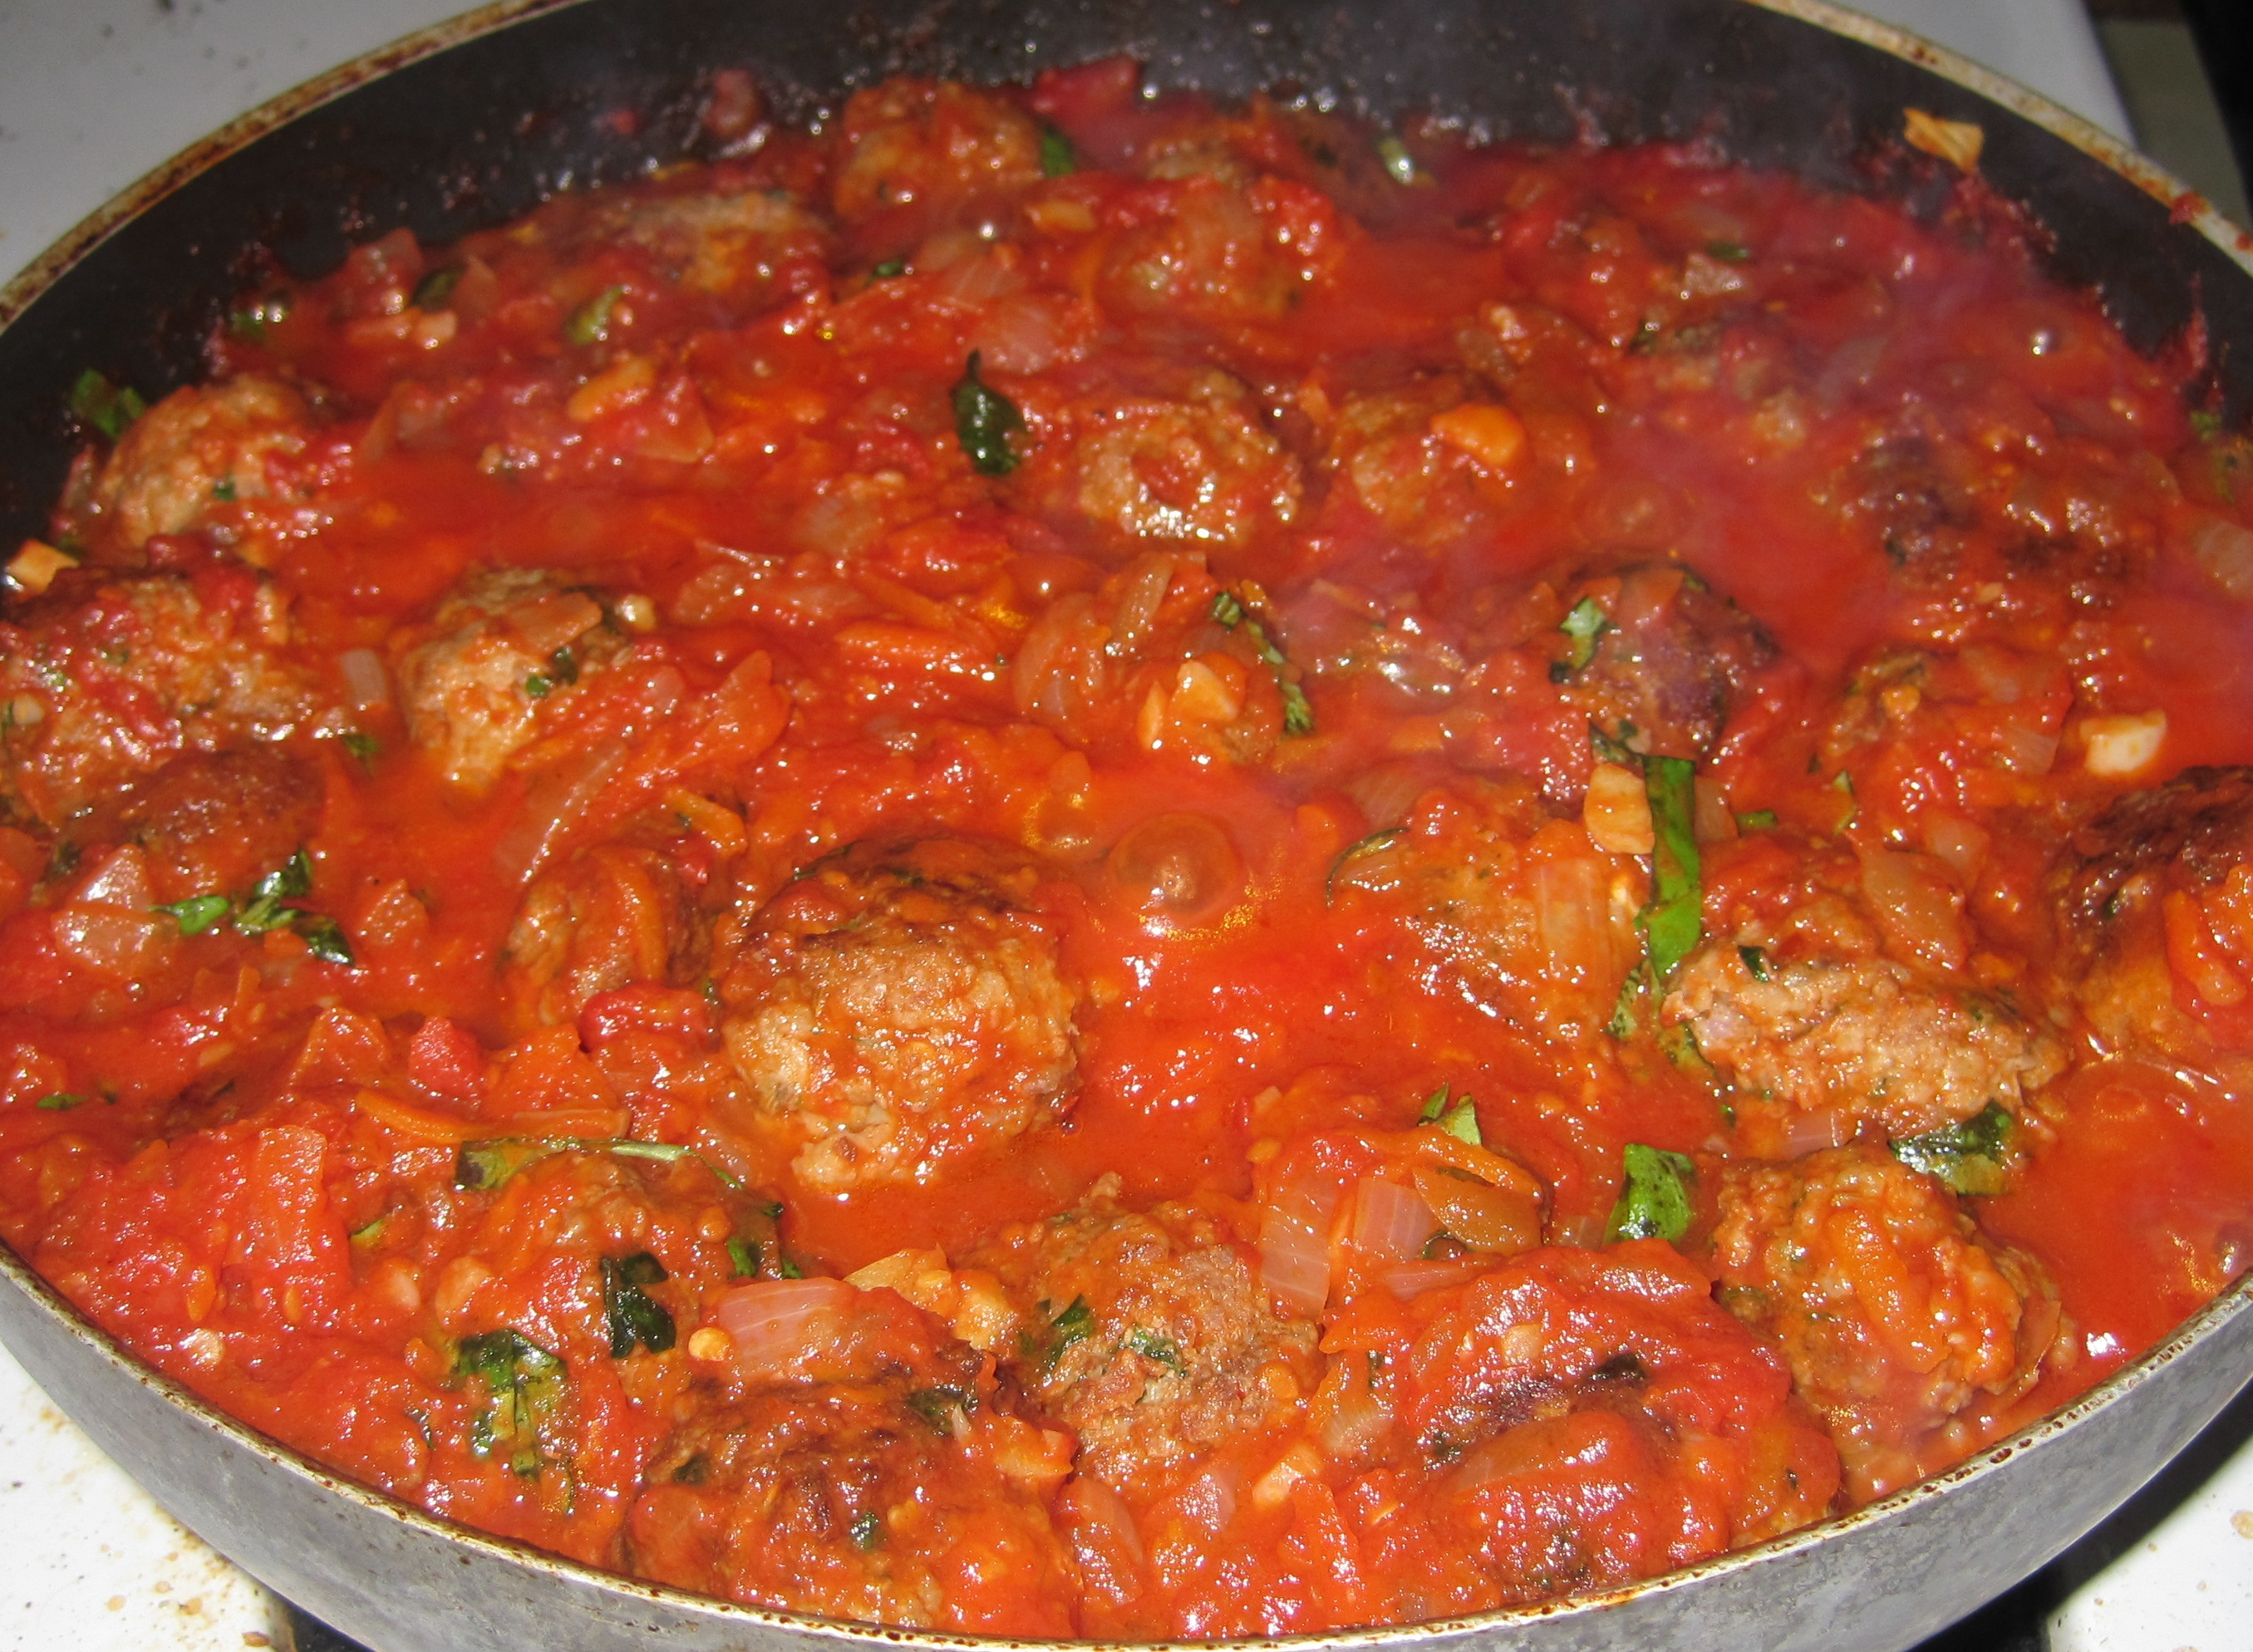 ... – Pork Meatballs with Marinara Sauce and Express Dobosch Torte